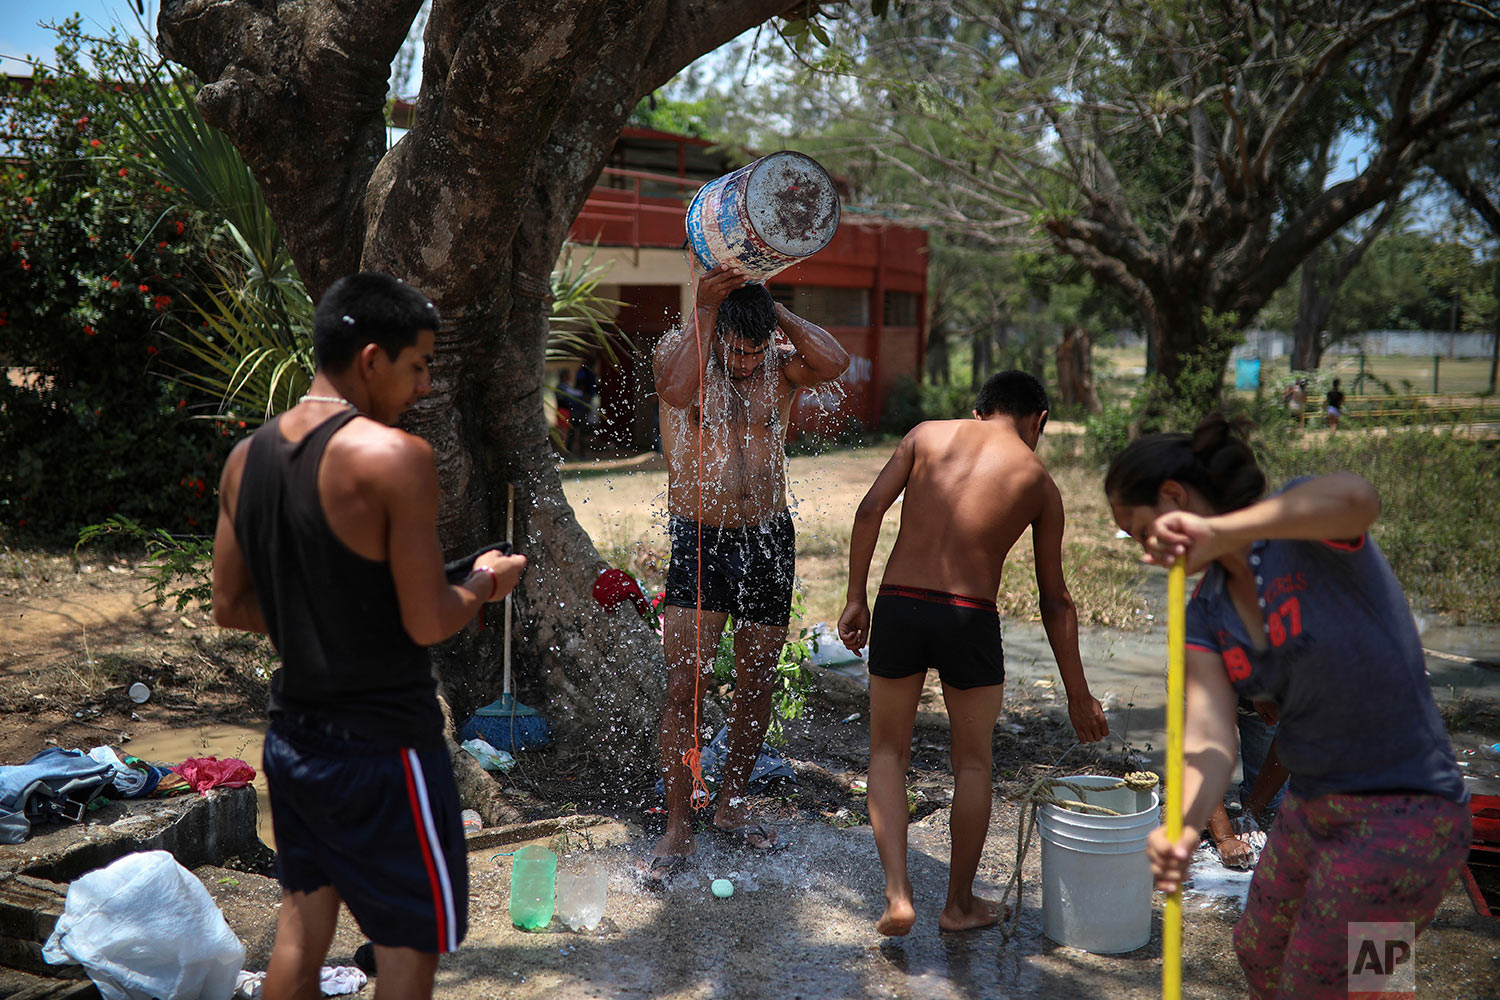 Central American migrants participating in the Migrant Stations of the Cross caravan take bucket baths where the group set up camp at a sports club in Matias Romero, Oaxaca State, Mexico, Tuesday, April 3, 2018. (AP Photo/Felix Marquez)